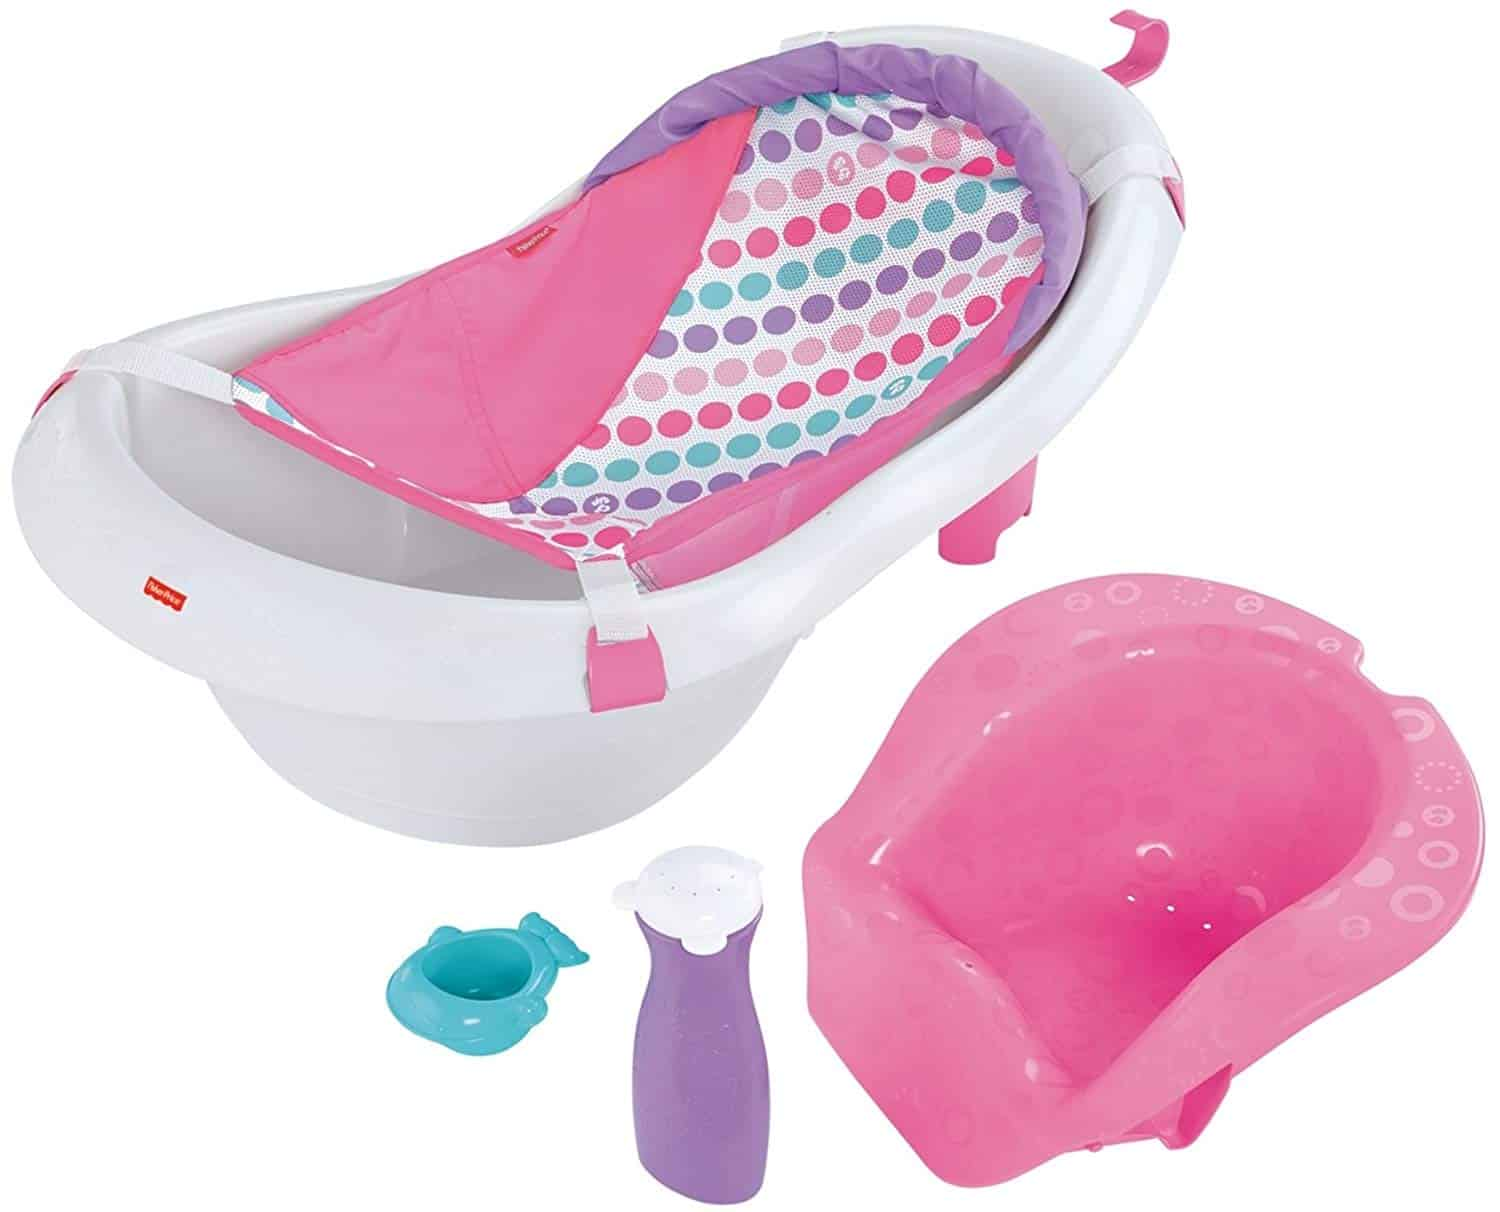 Fisher-Price 4-In-1 Sling 'n Seat Tub, White/Pink/Blue